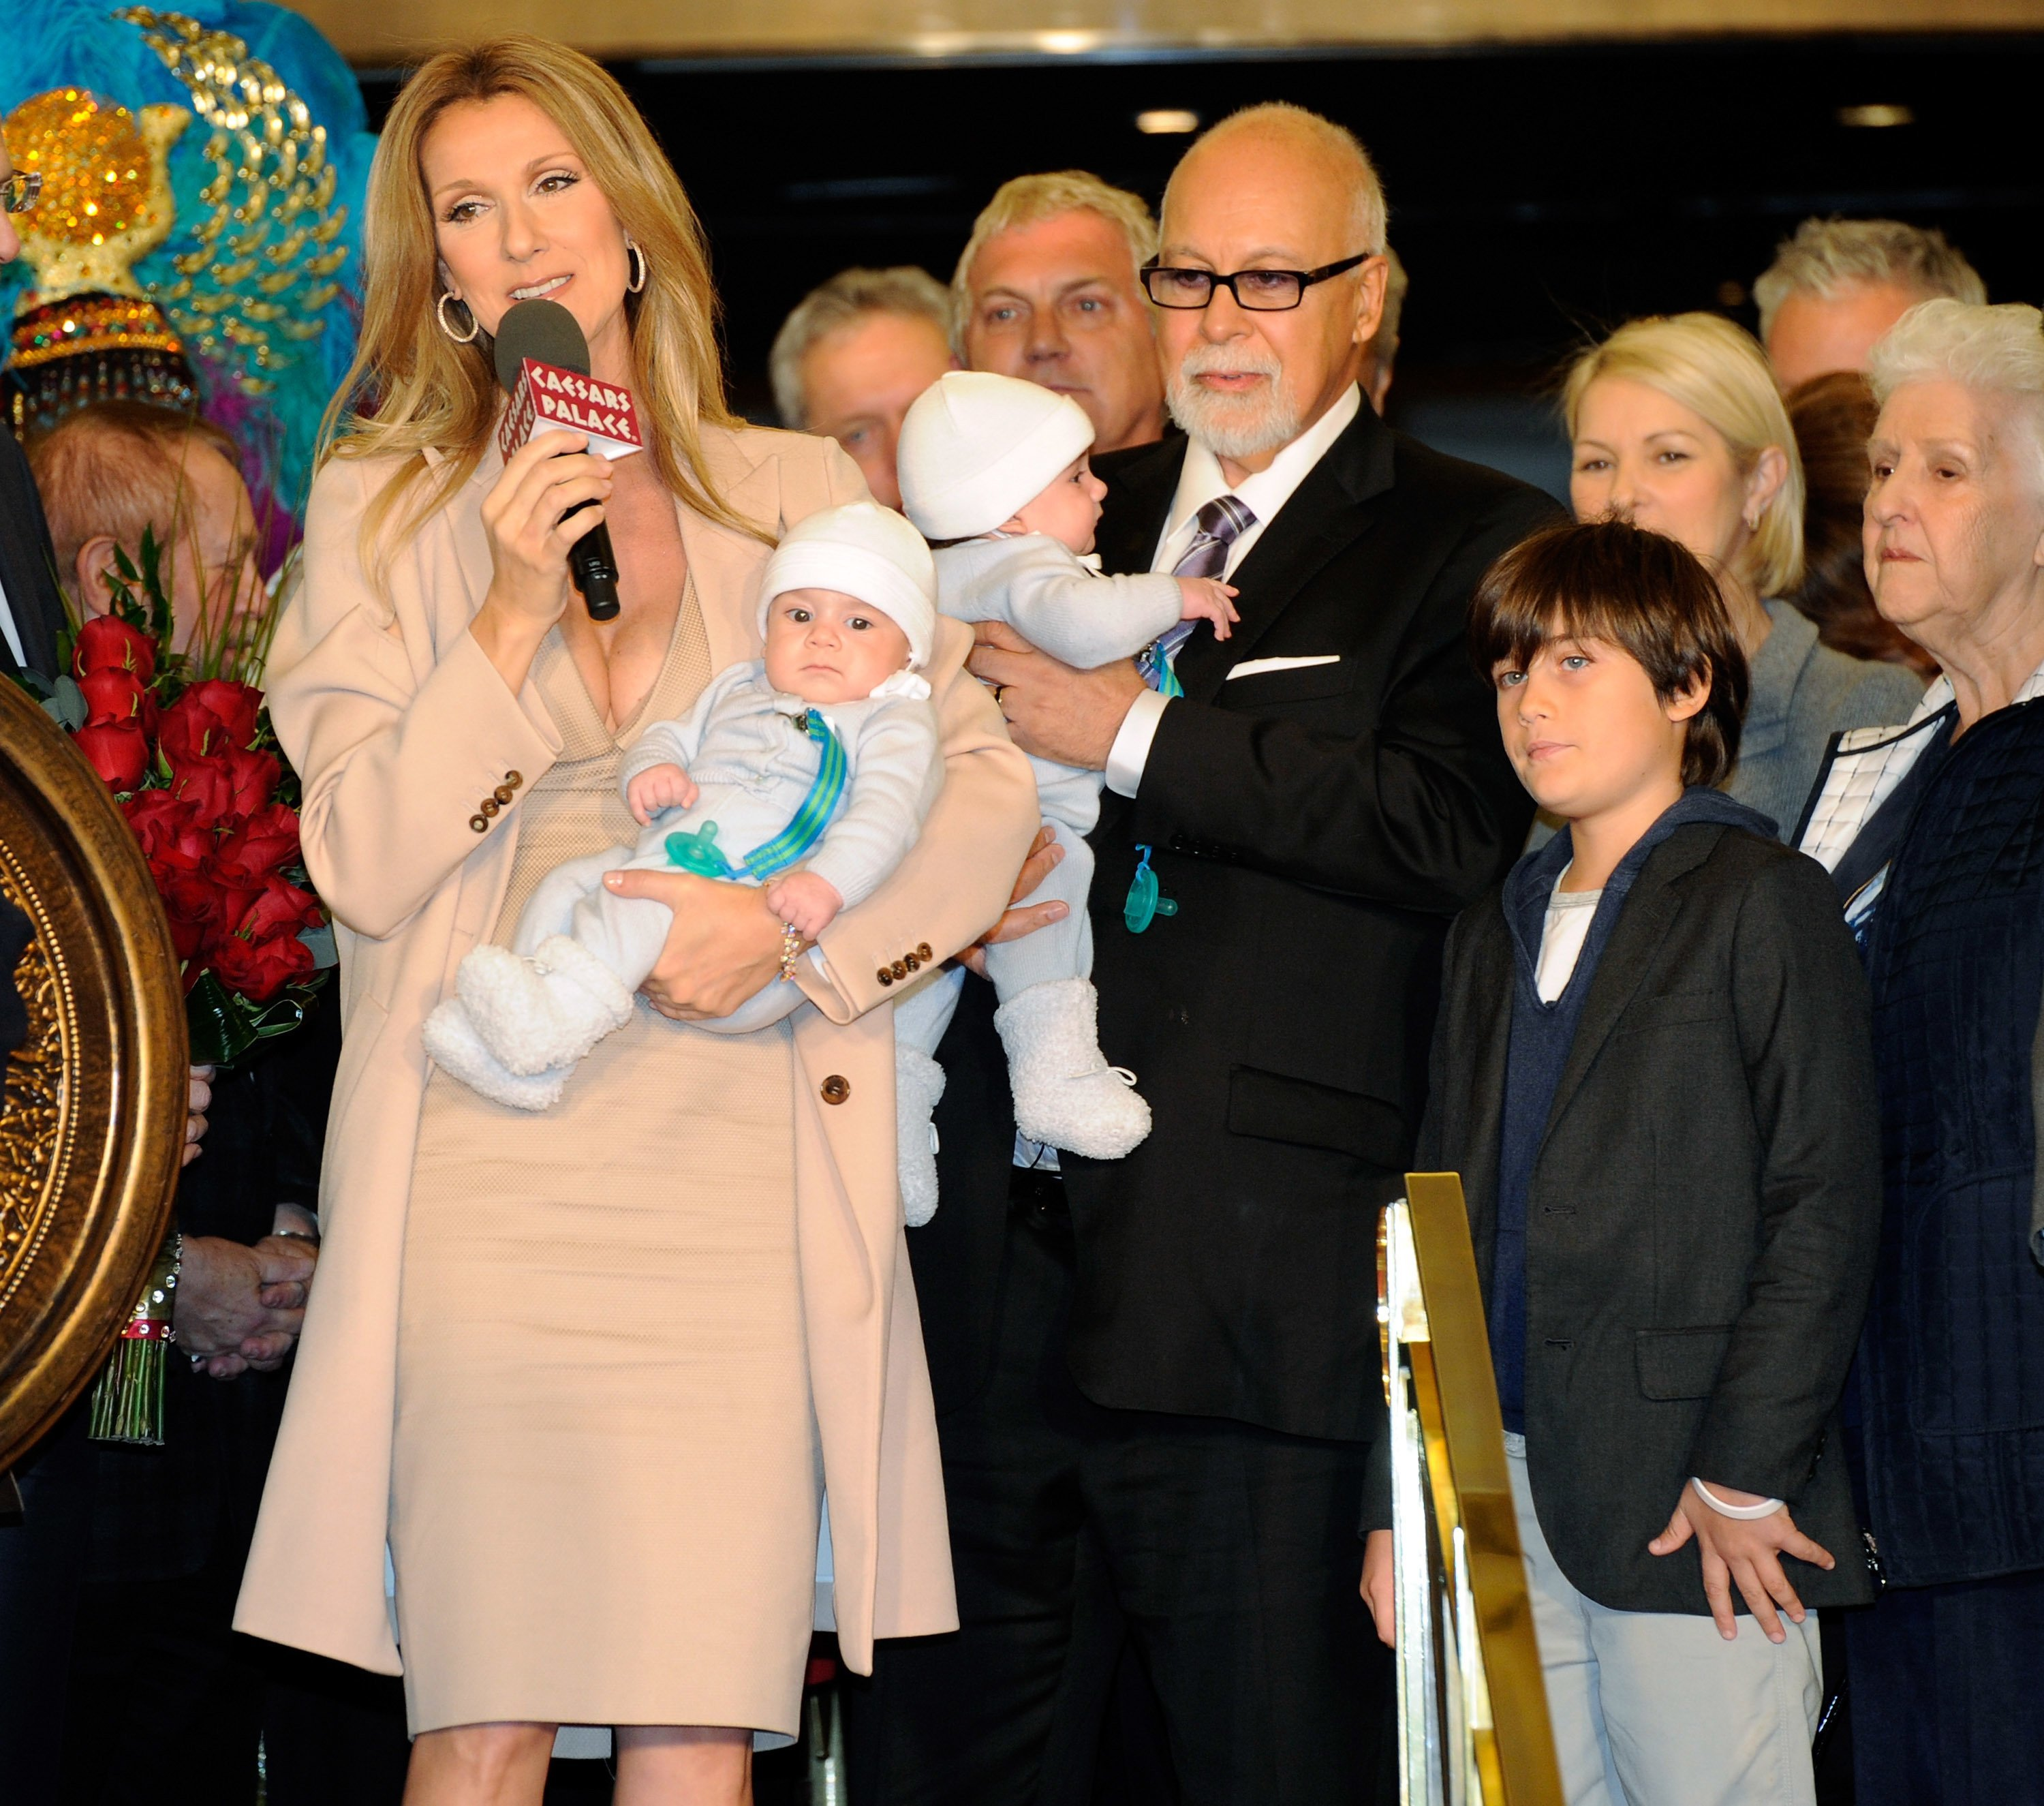 Celine Dion, Rene Angelil, with the twins Nelson and Eddie, and their son Rene-Charles at Caesars Palace in Las Vegas in 2011 | Source: Getty Images